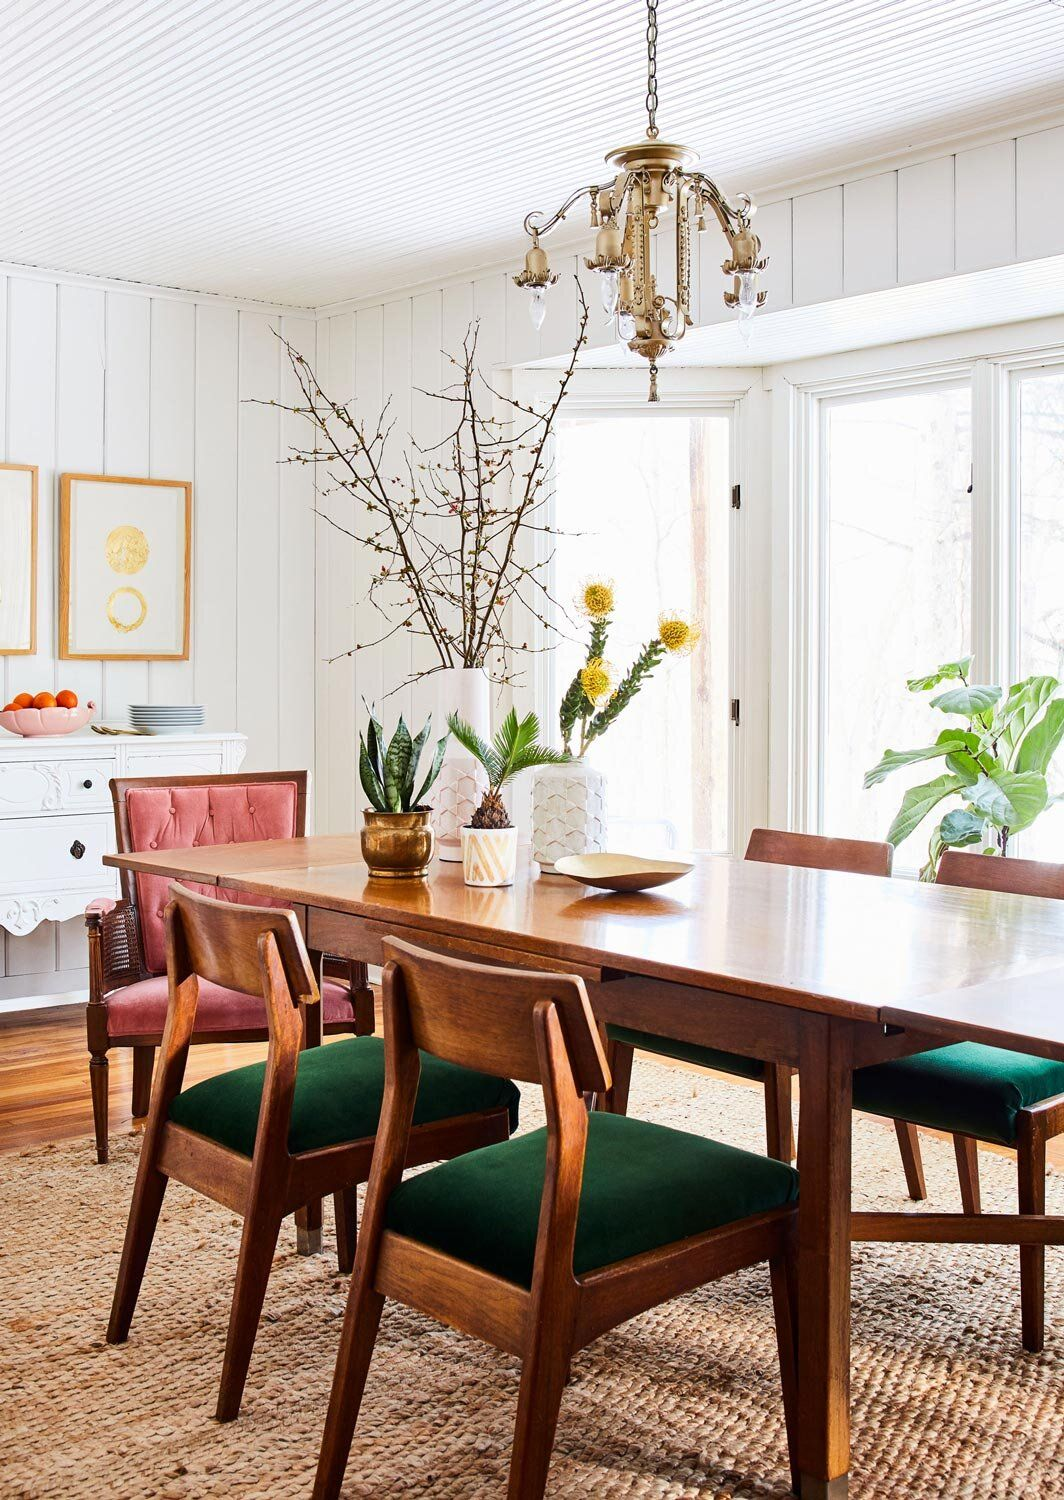 House Tour: At Home with the Chief Golden Girl